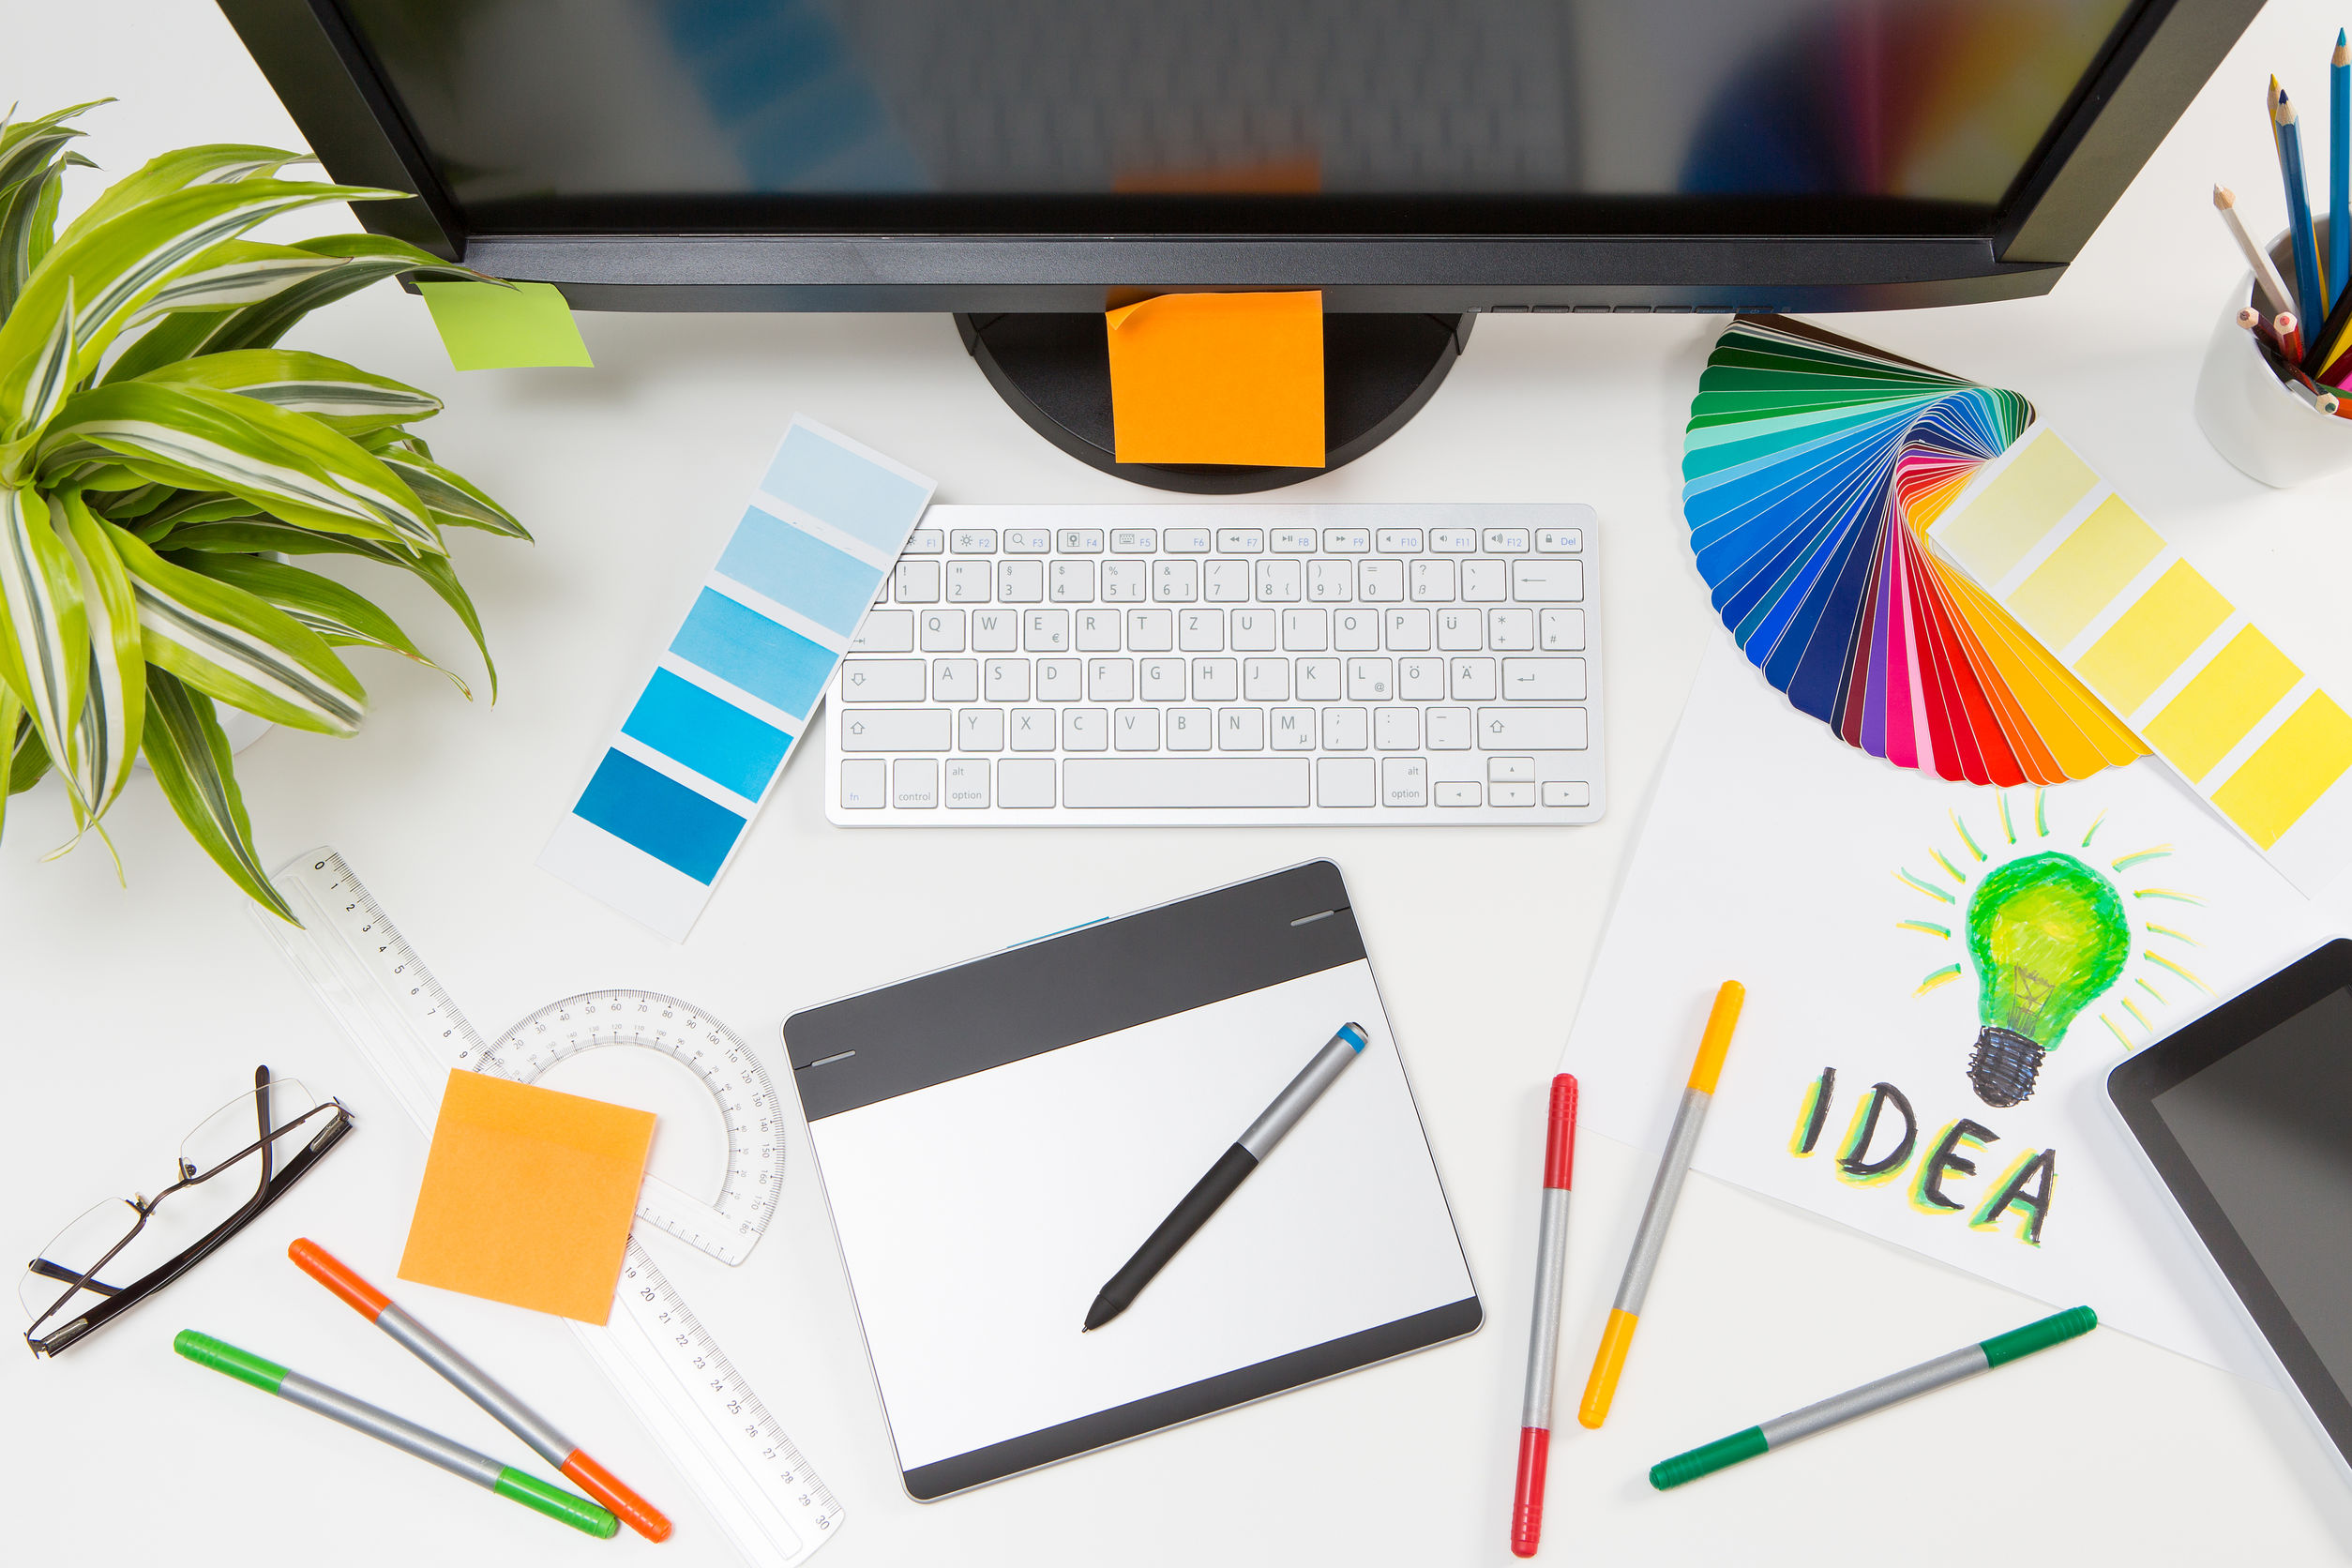 An introduction to design rights